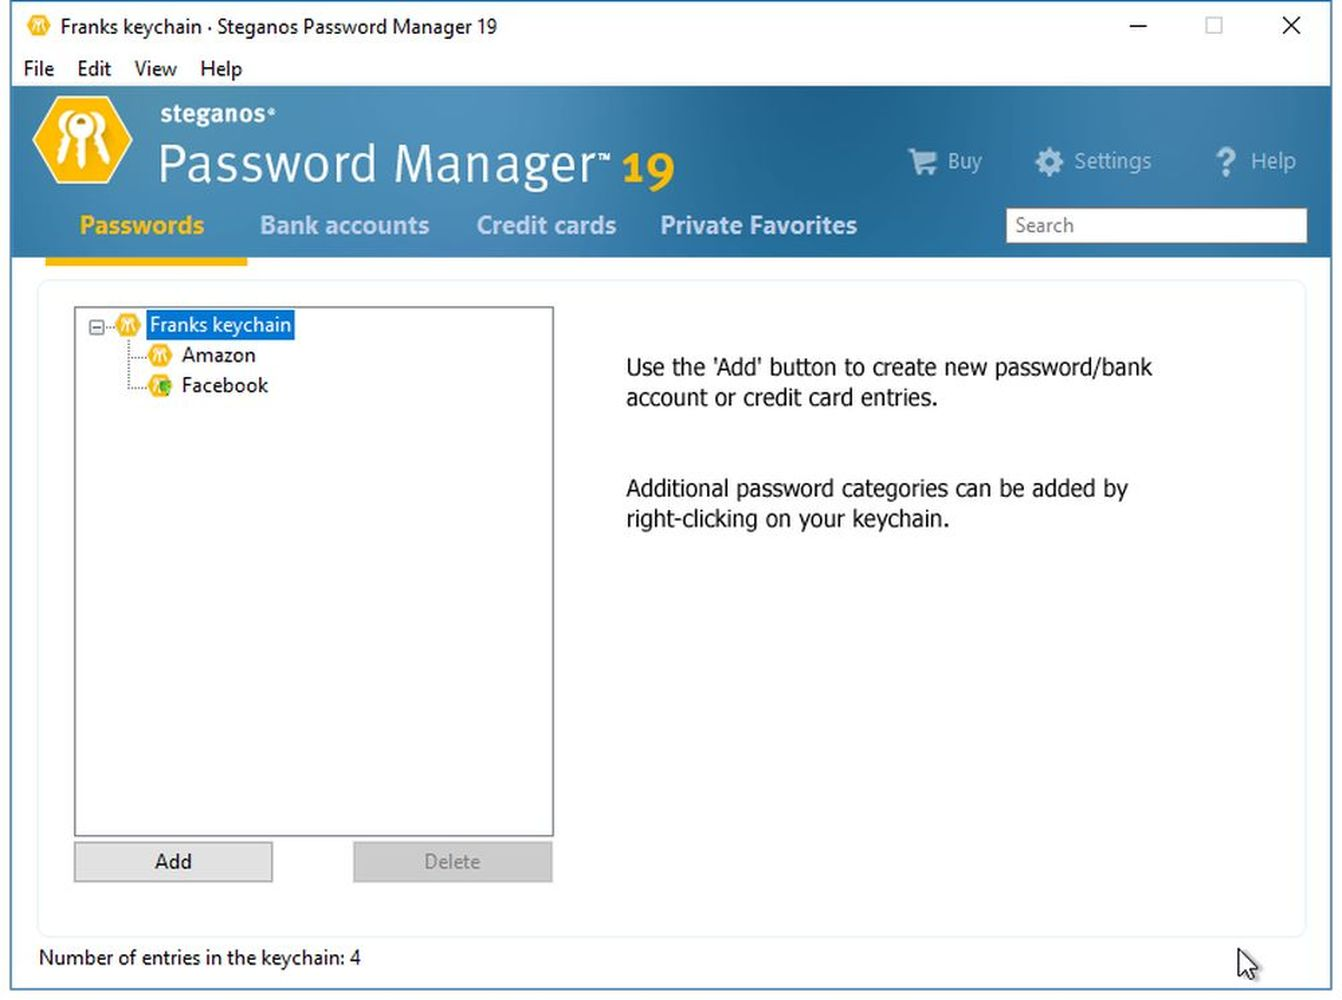 Amazon.com  Steganos Password Manager 19 - Create and manage strong  passwords! Windows 10 98d88f4af5